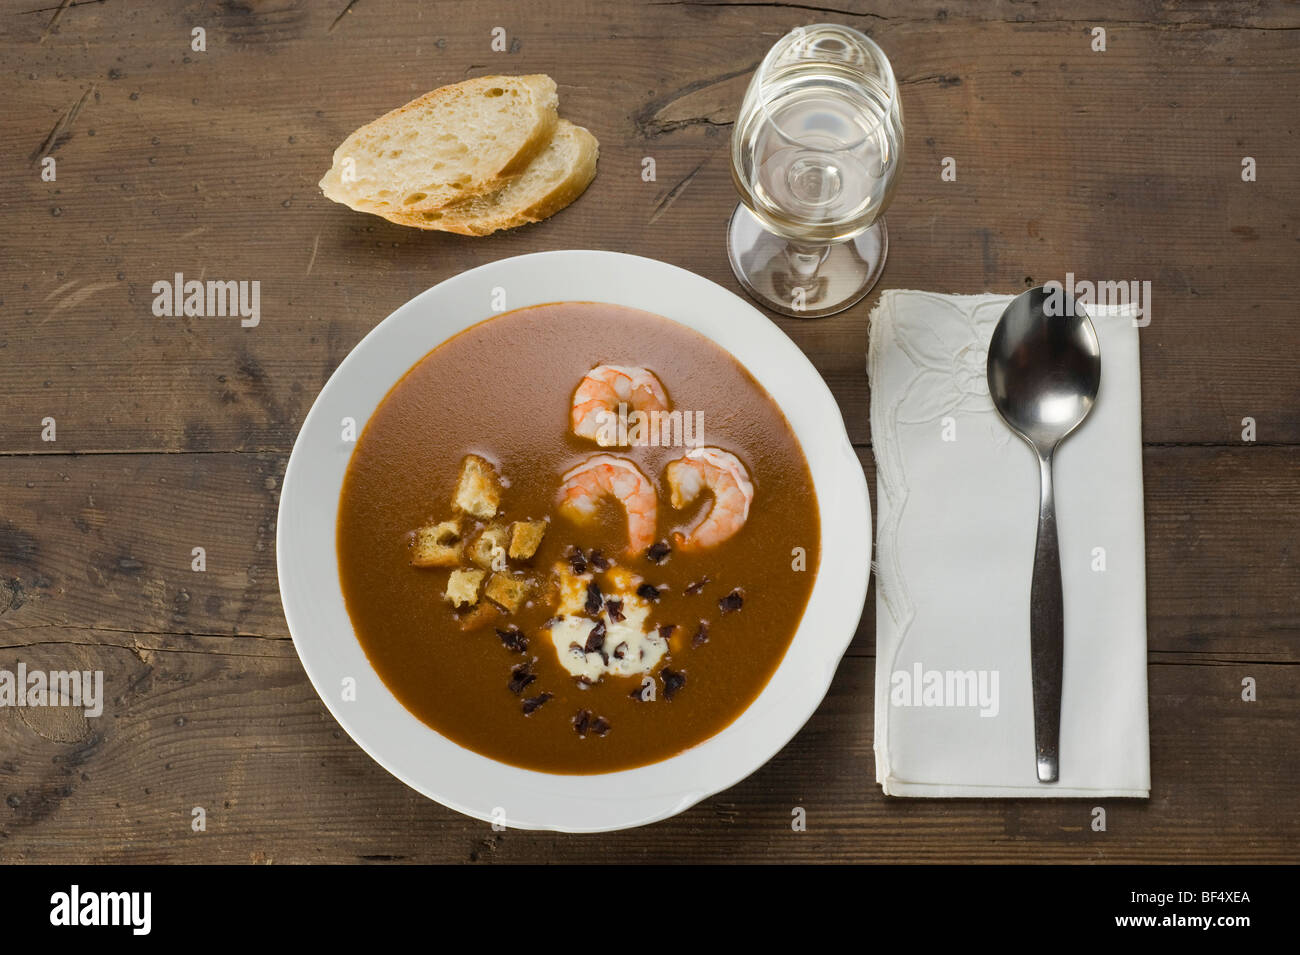 Fish soup, Soupe de Poisson, with shrimp, croutons and Dulse (Palmaria palmata), a red alga - Stock Image